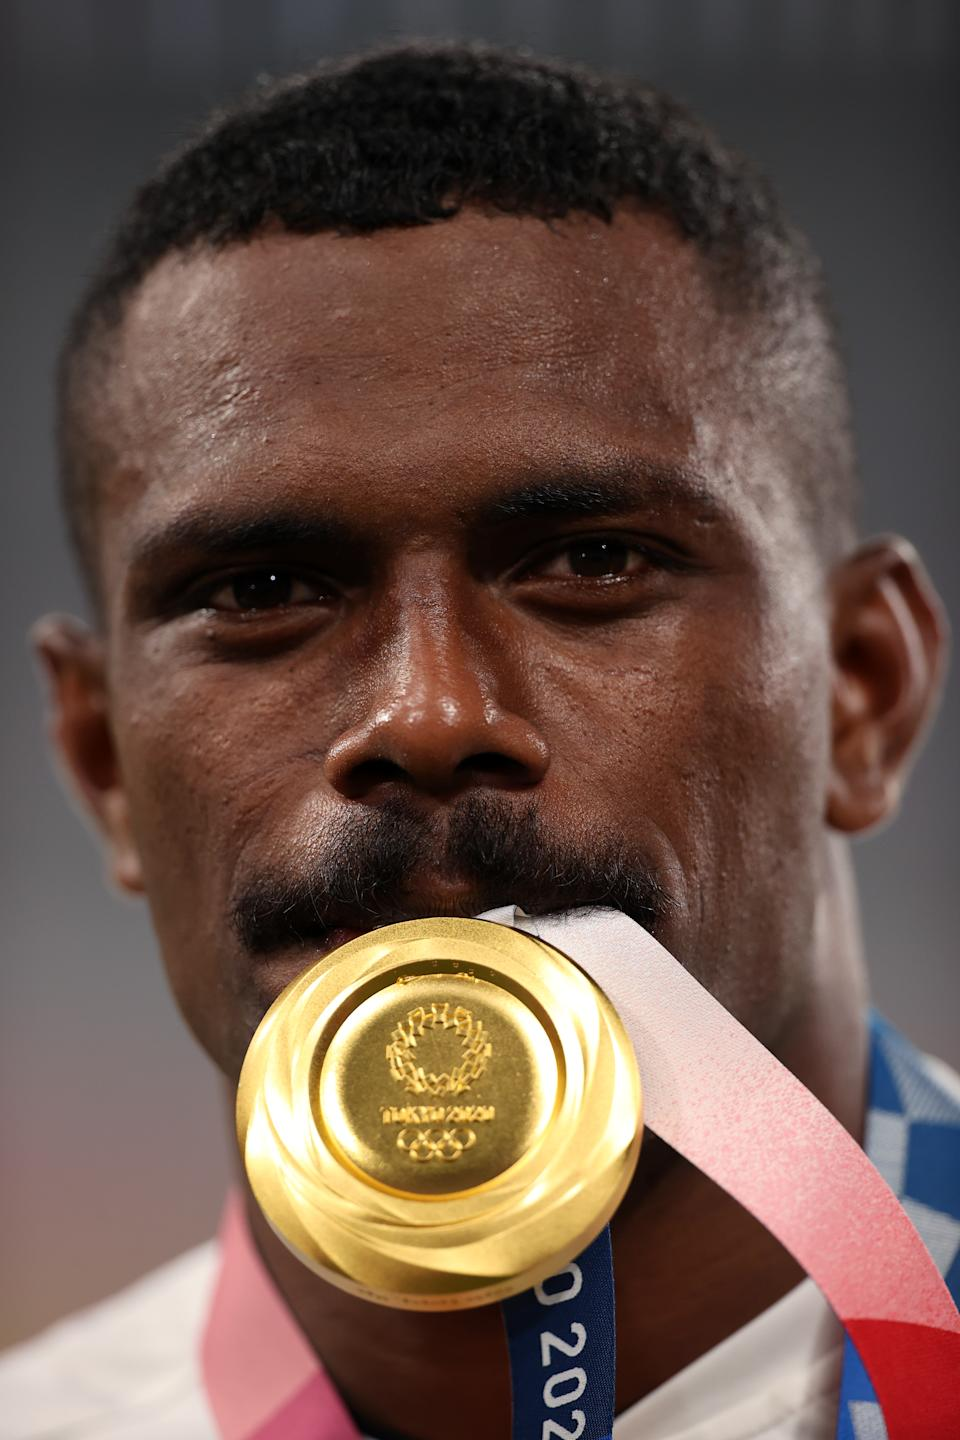 <p>CHOFU, JAPAN - JULY 28: Jiuta Wainiqolo of Team Fiji poses with his gold medal following victory in the Rugby Sevens Men's Gold Medal match between New Zealand and Fiji on day five of the Tokyo 2020 Olympic Games at Tokyo Stadium on July 28, 2021 in Chofu, Tokyo, Japan. (Photo by Dan Mullan/Getty Images)</p>